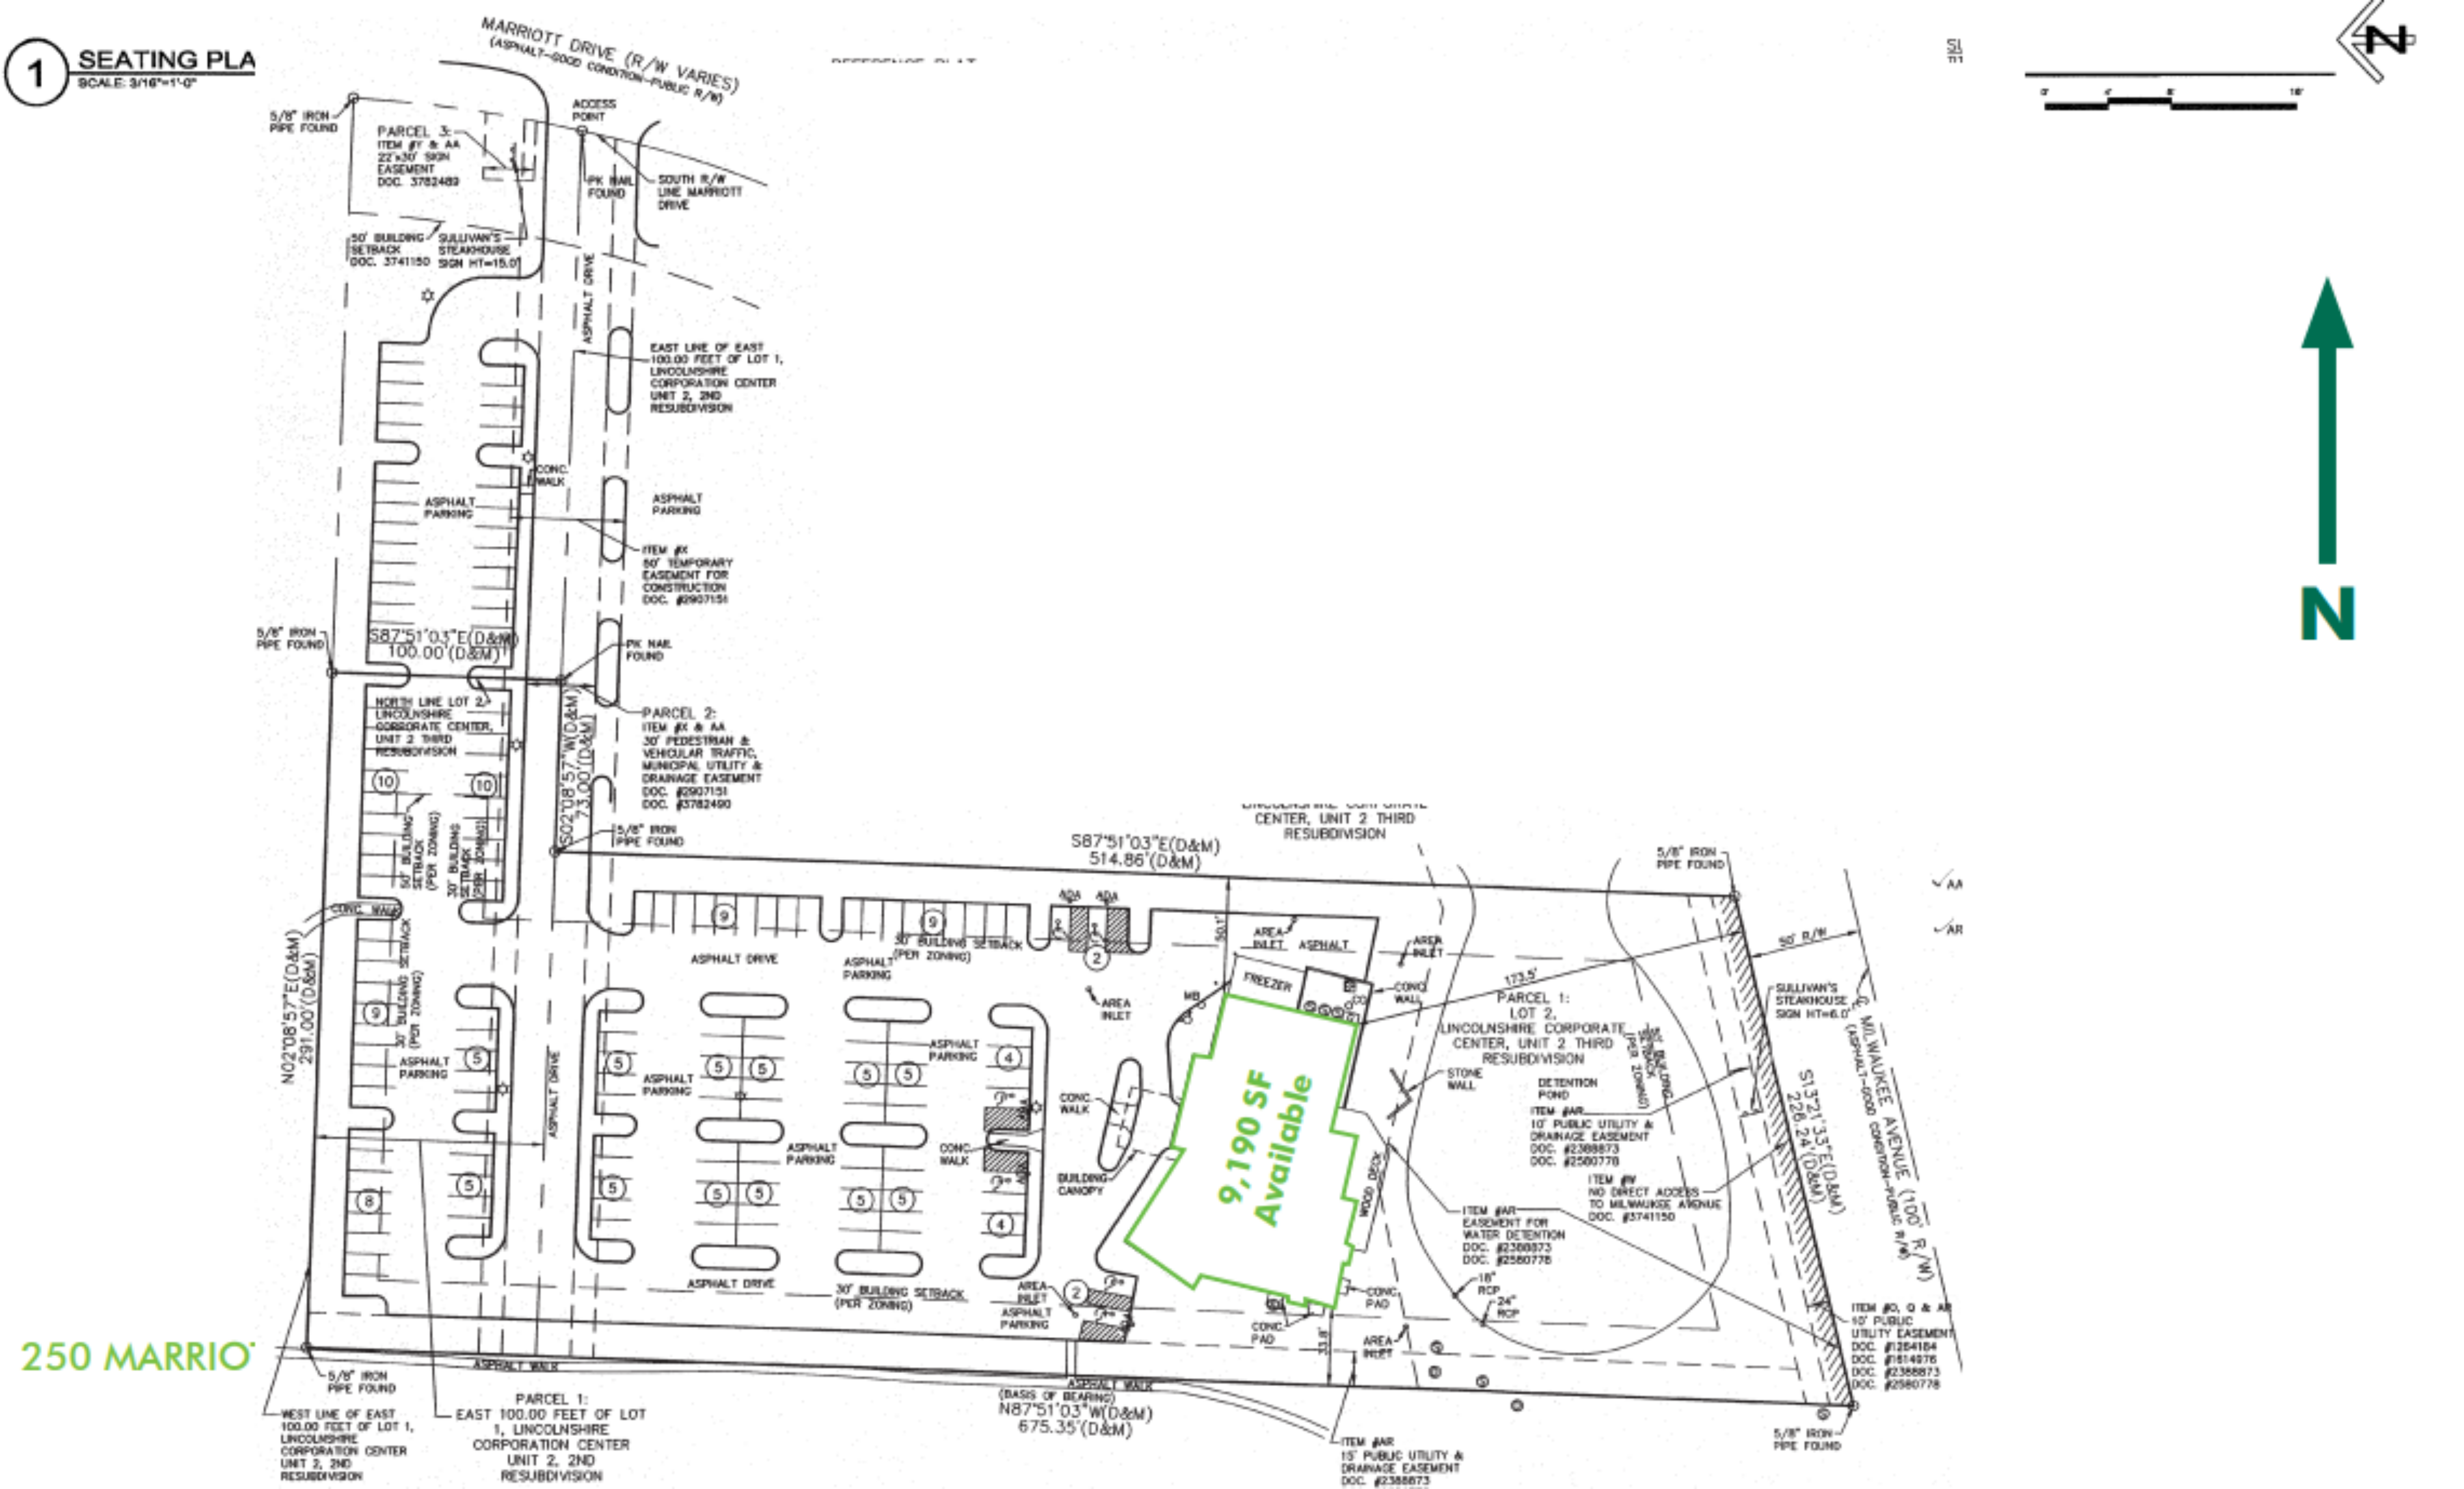 9,190 SF Restaurant Available on 3.39 Acres: site plan